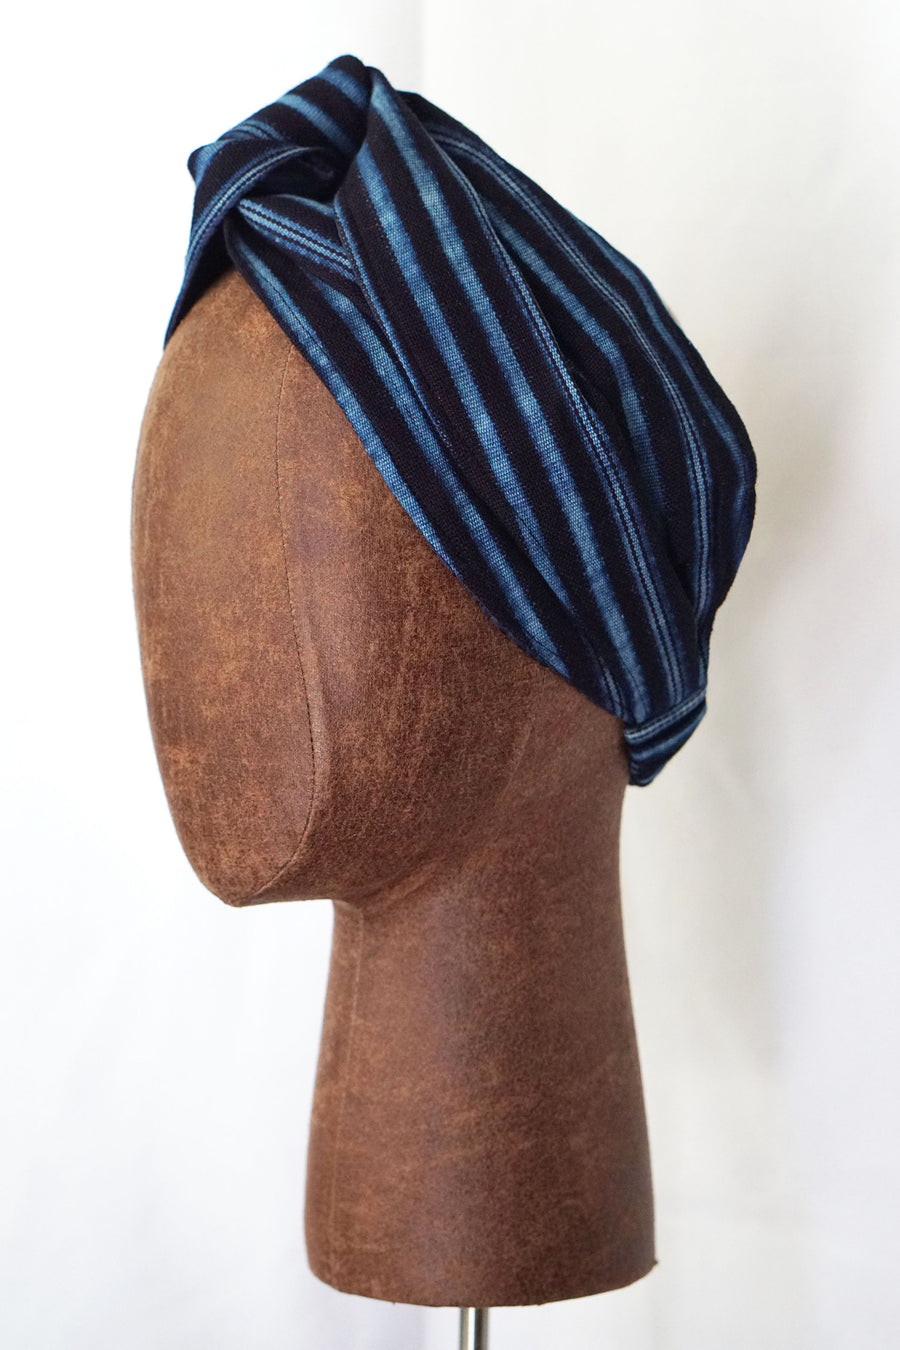 Indigo Stripe (Satin-Lined)